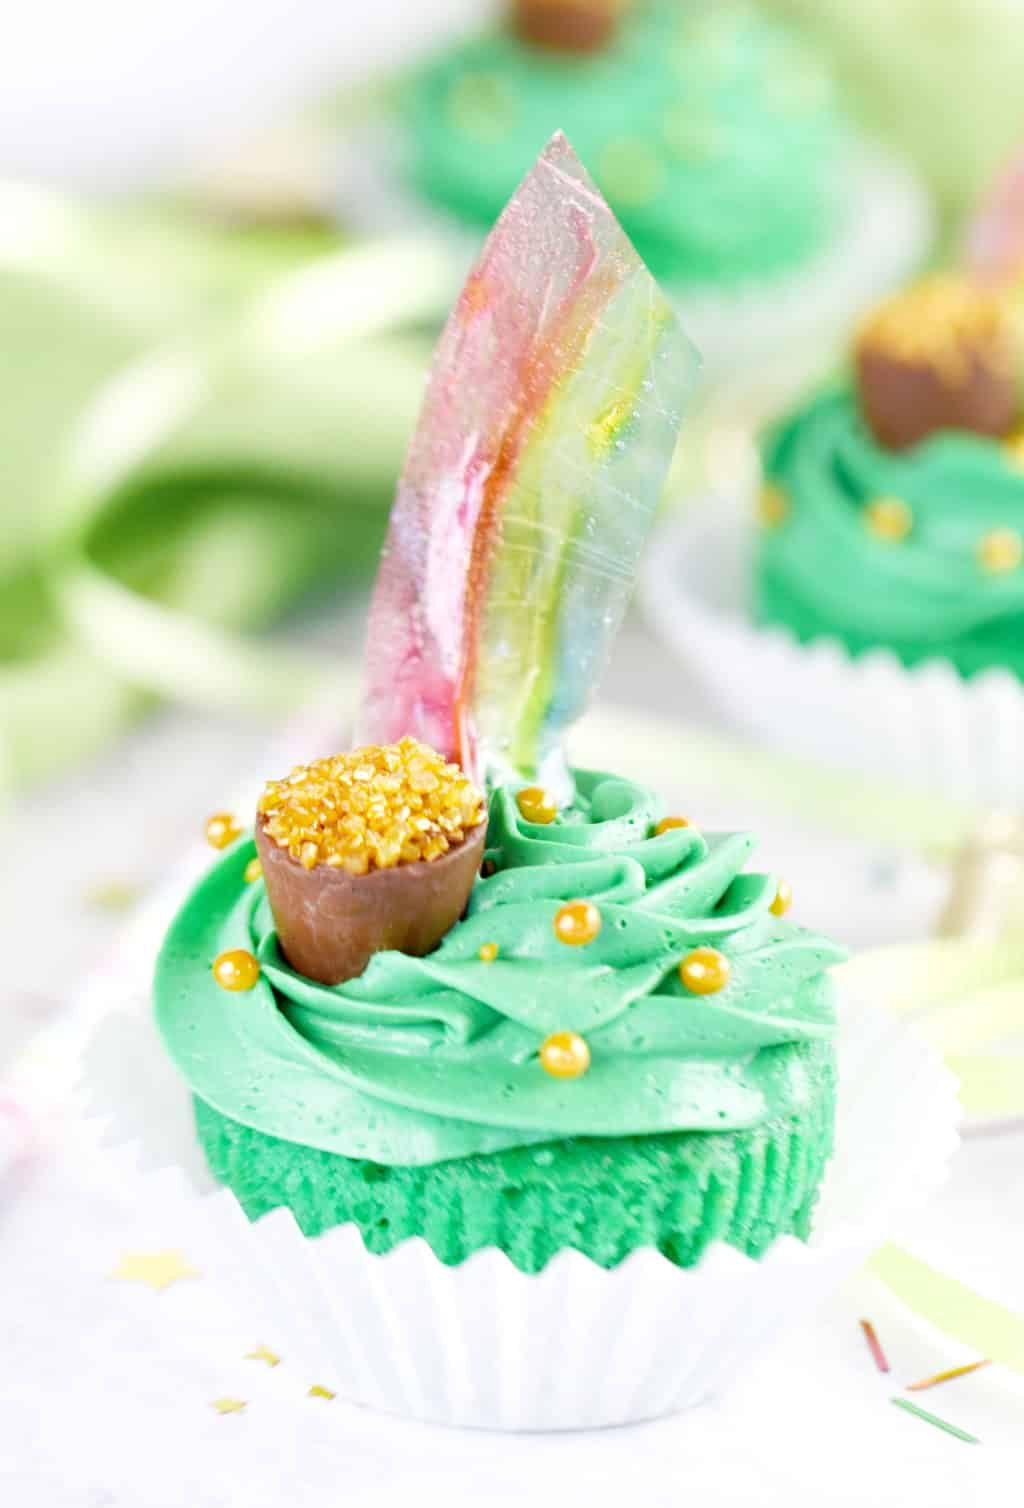 St. Patrick's Day Pot of Gold Cupcakes with Rainbows!!! So fun. Just use gelatin to make these easy rainbows!